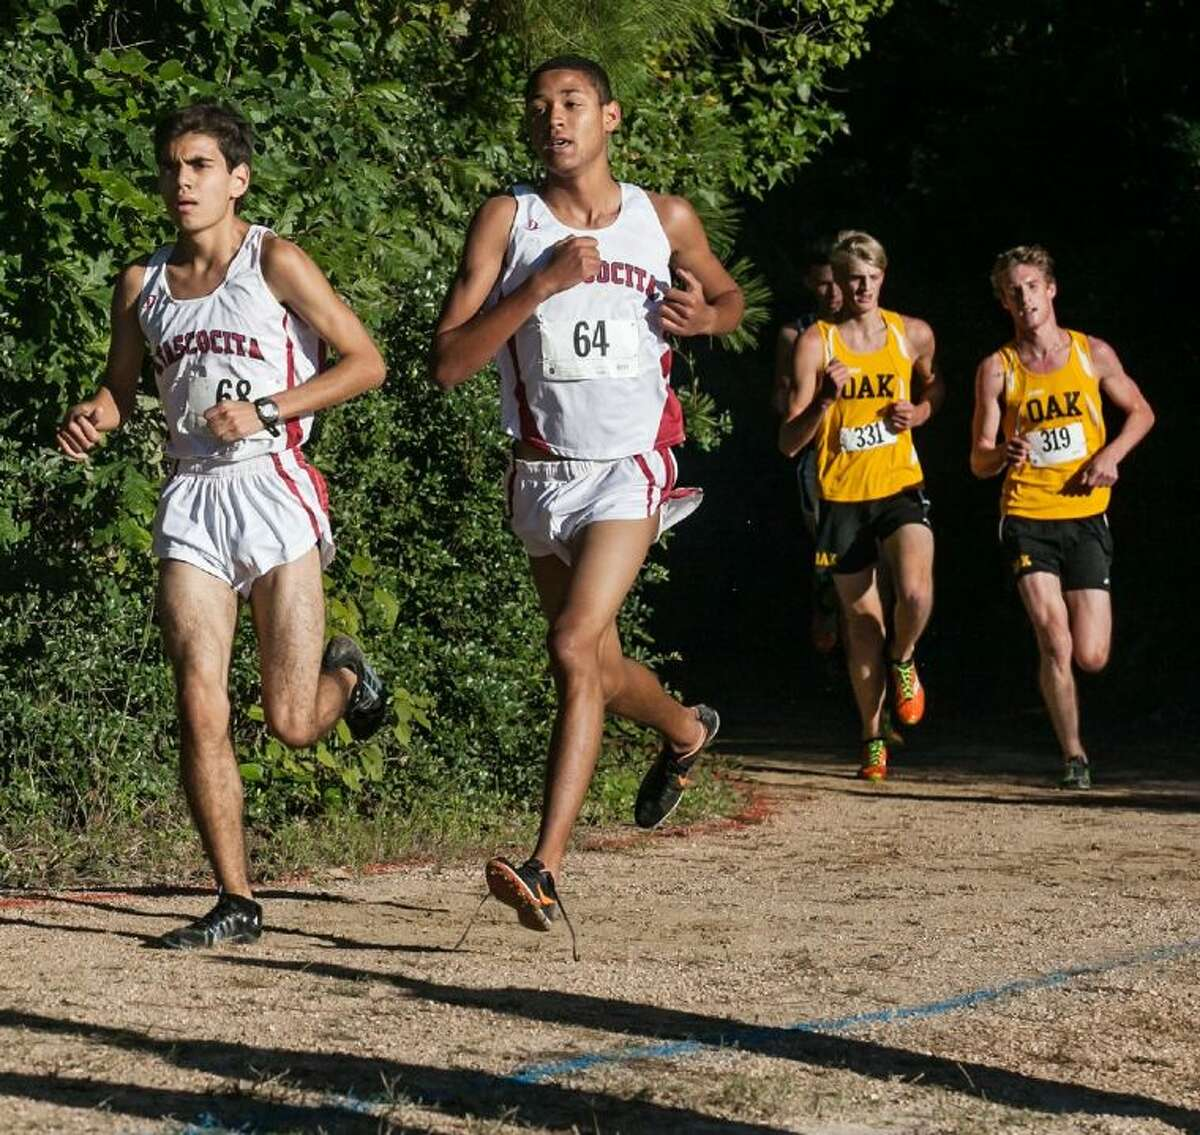 Atascocita's Josh Lozano and Andres Espinosa try to separate from the pack in the District 13-5A cross country championships at Atascocita High School on Wednesday.